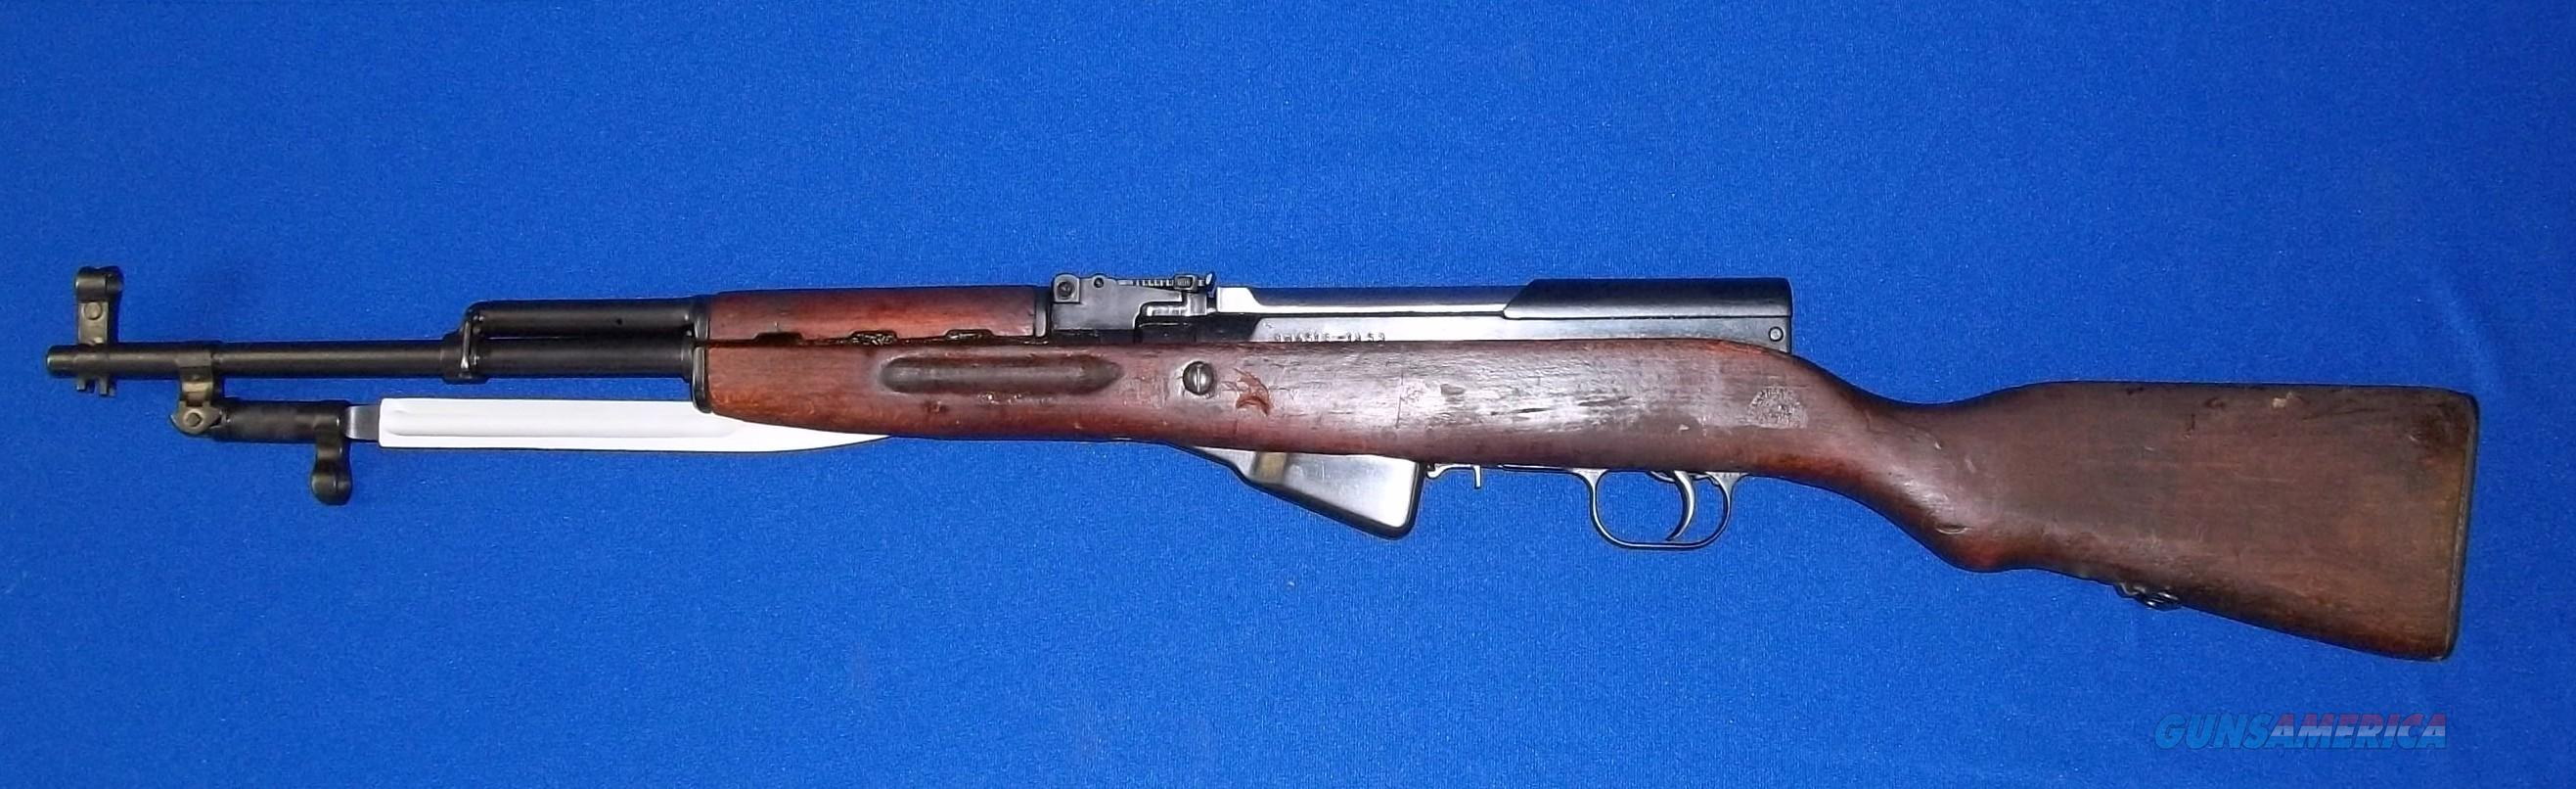 ROMANIAN MODEL 56 SKS MANUFACTURED IN 1959 BY CUGIR FACTORY IN ROMANIA. FEATURES FOLDING BLADE BAYONET AND CHROME LINED BARREL!  Guns > Rifles > SKS Rifles